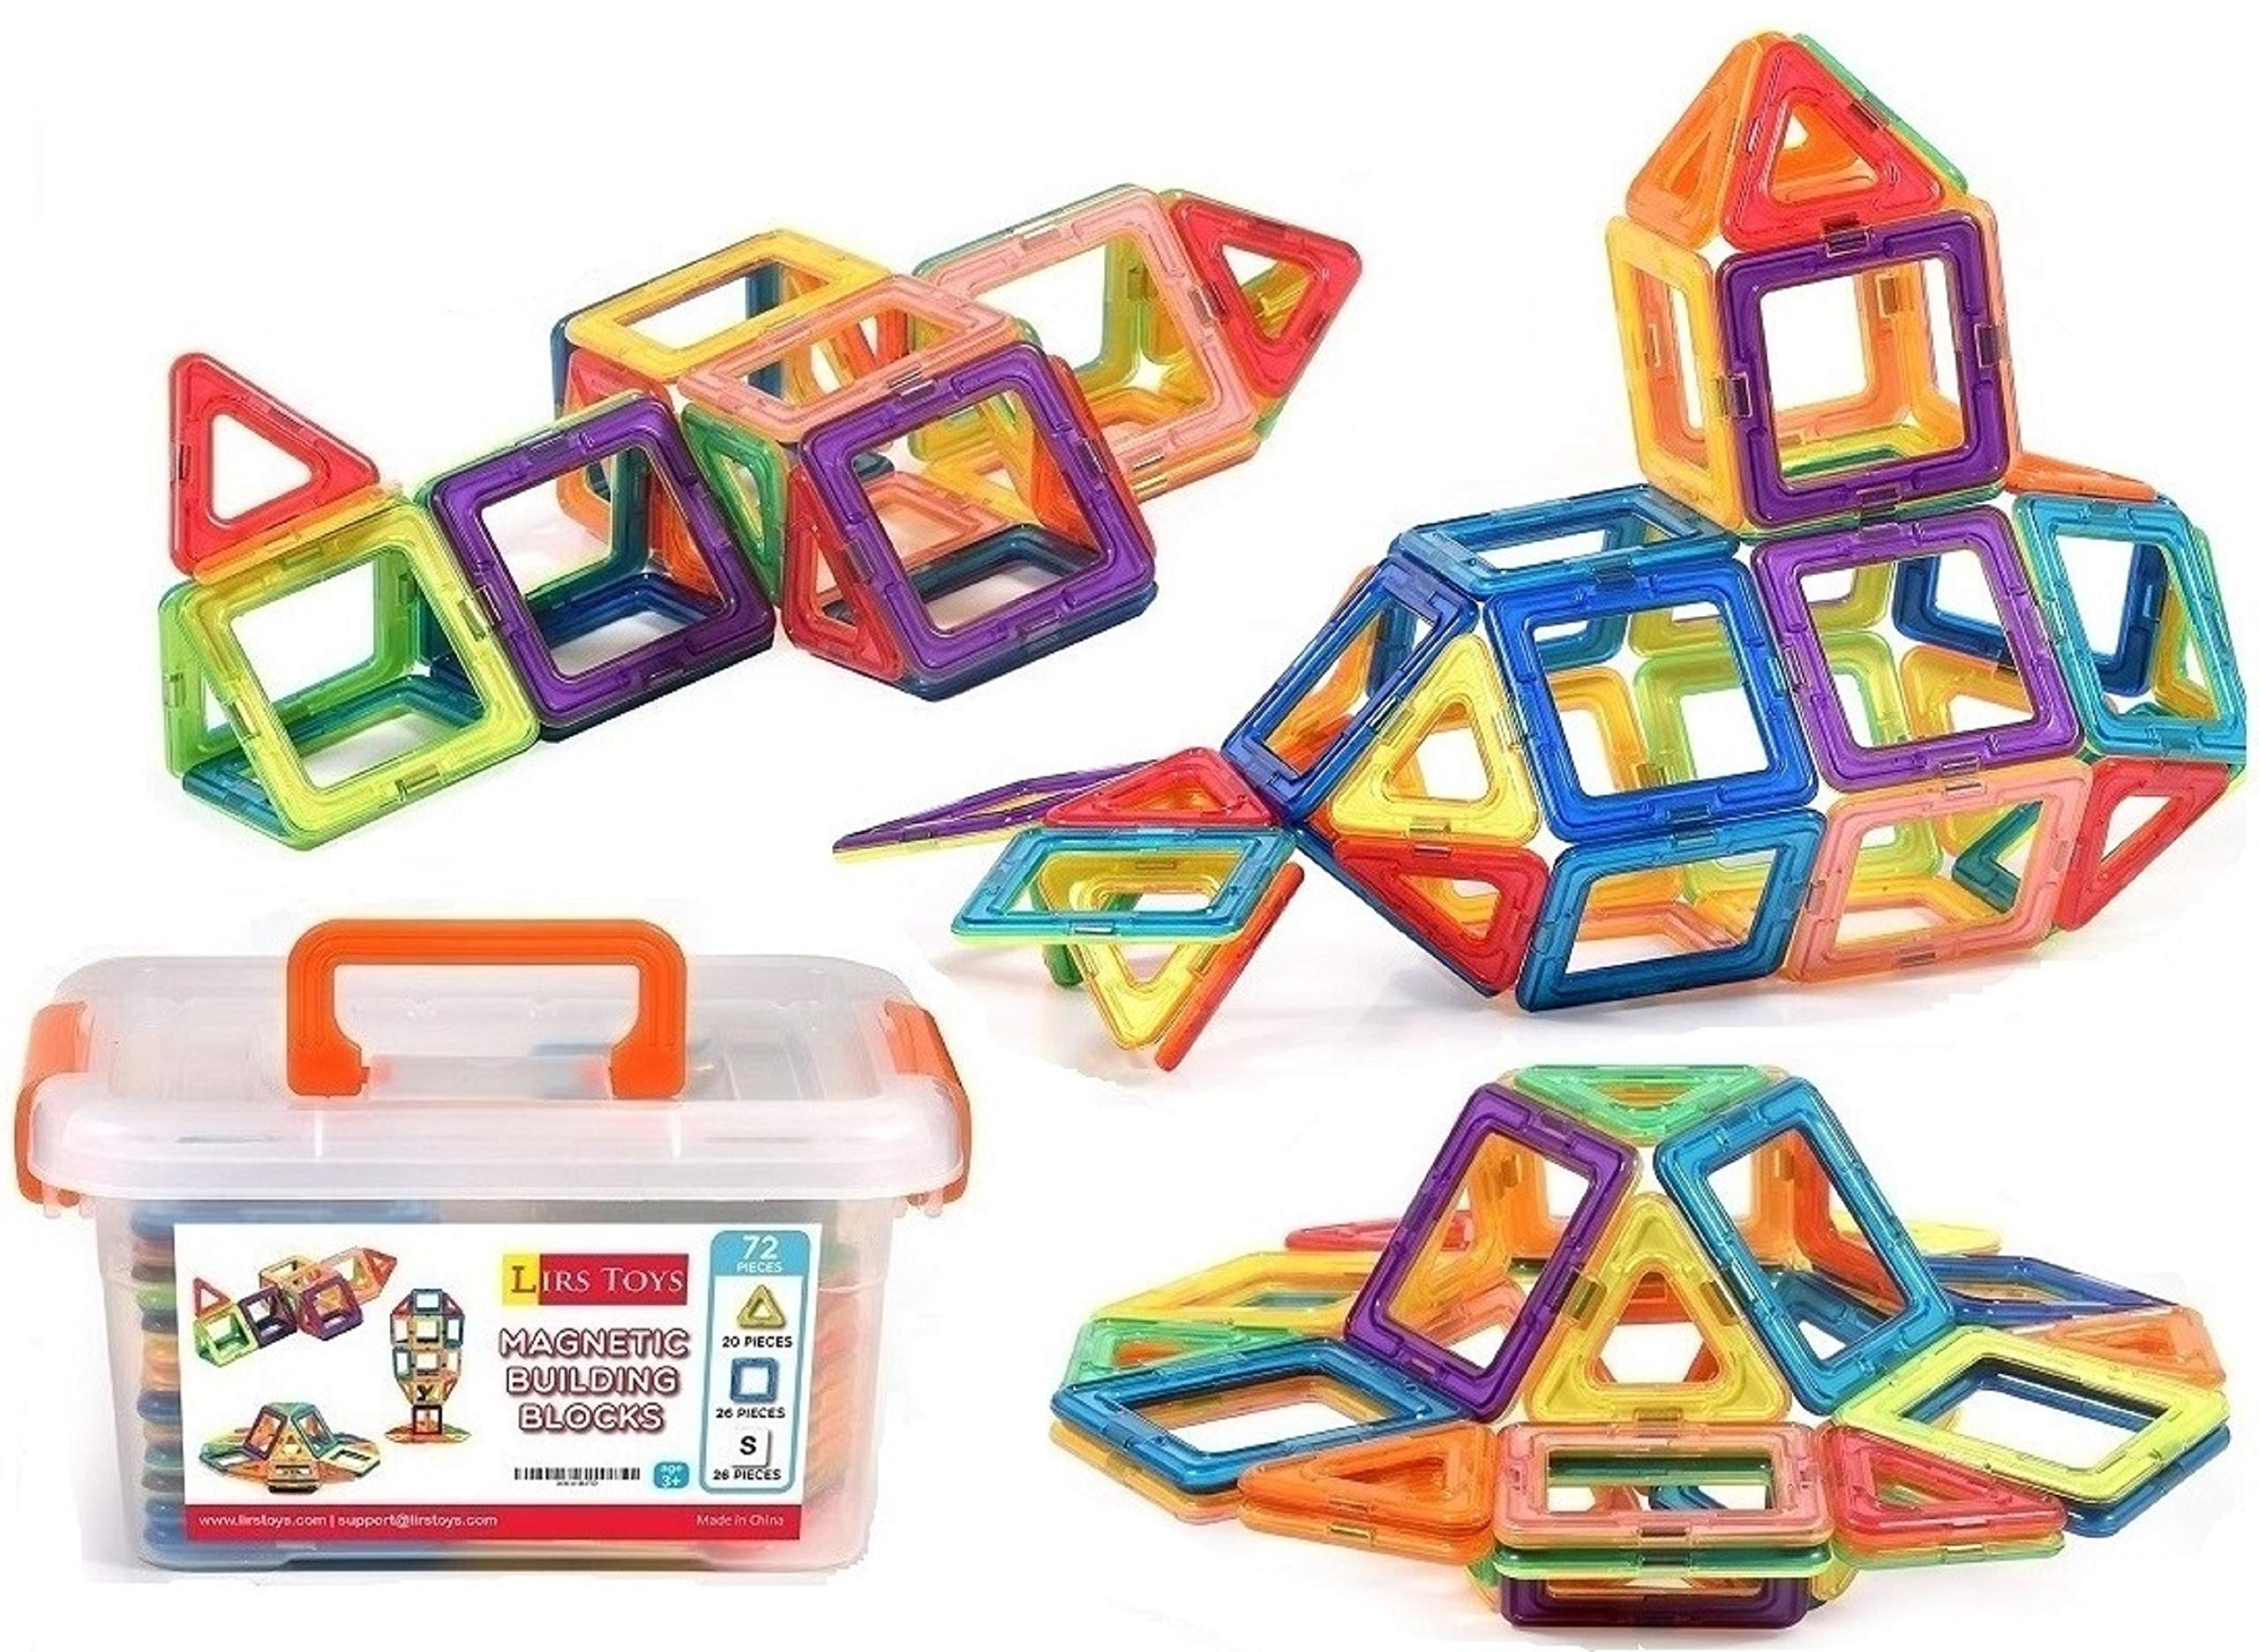 LIRS TOYS Magnetic Building Blocks Toy - 72 pcs Set of Fun, Creative, Educational 3D Construction. Plastic Tiles for Kids Age 3+ with Carry Case and Alphabet Squares. for Boys and Girls by LIRS TOYS